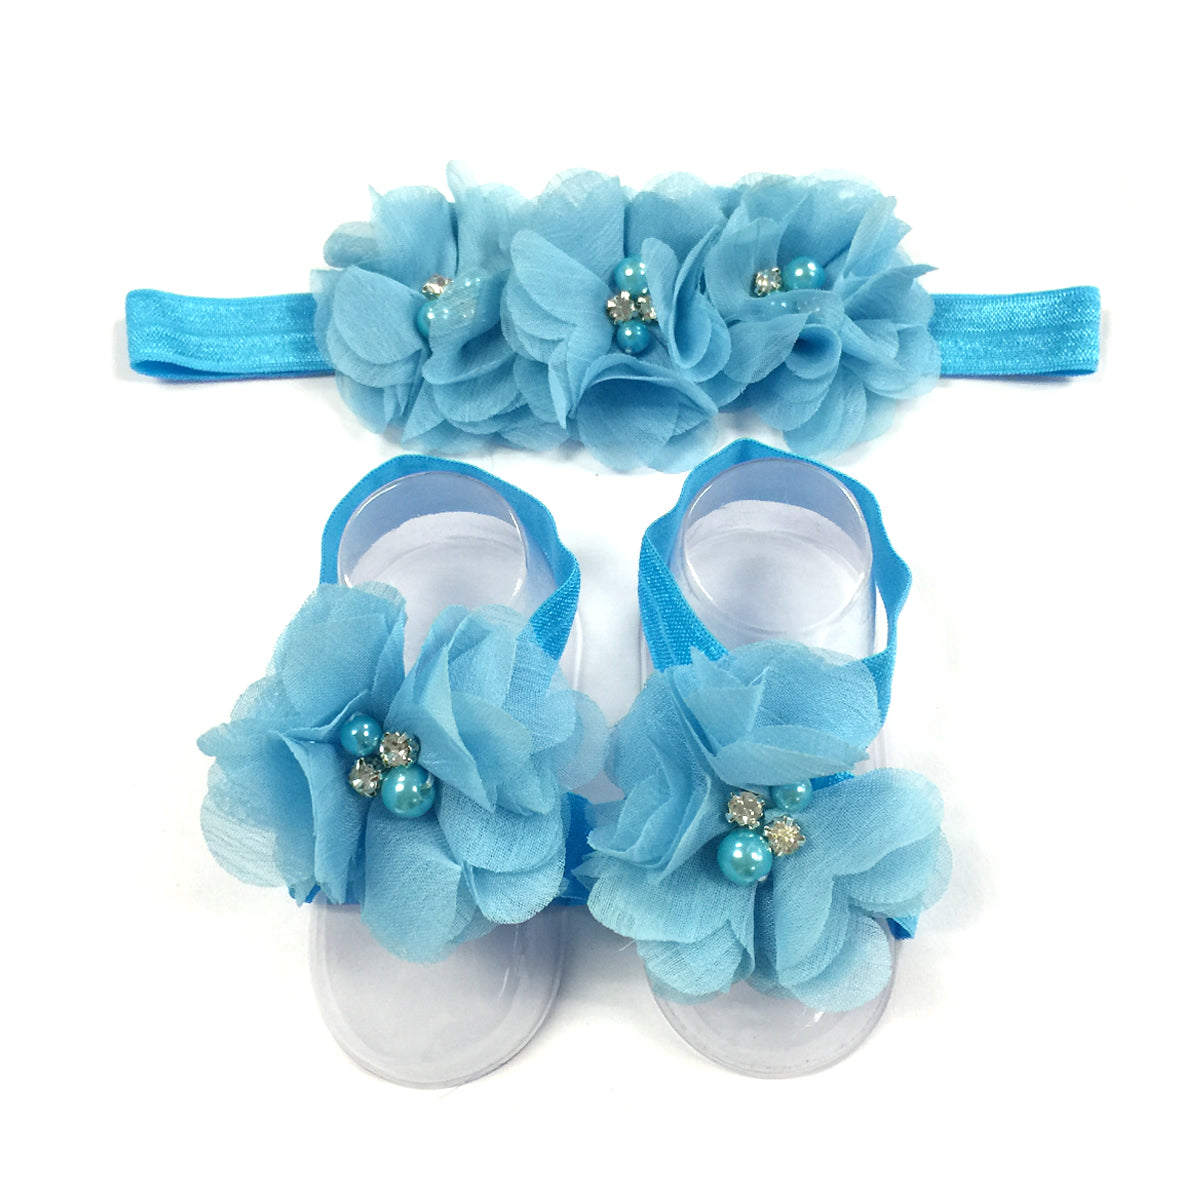 Wrapables Shabby Chic Flower Headband + Barefoot Sandals (Set of 4)